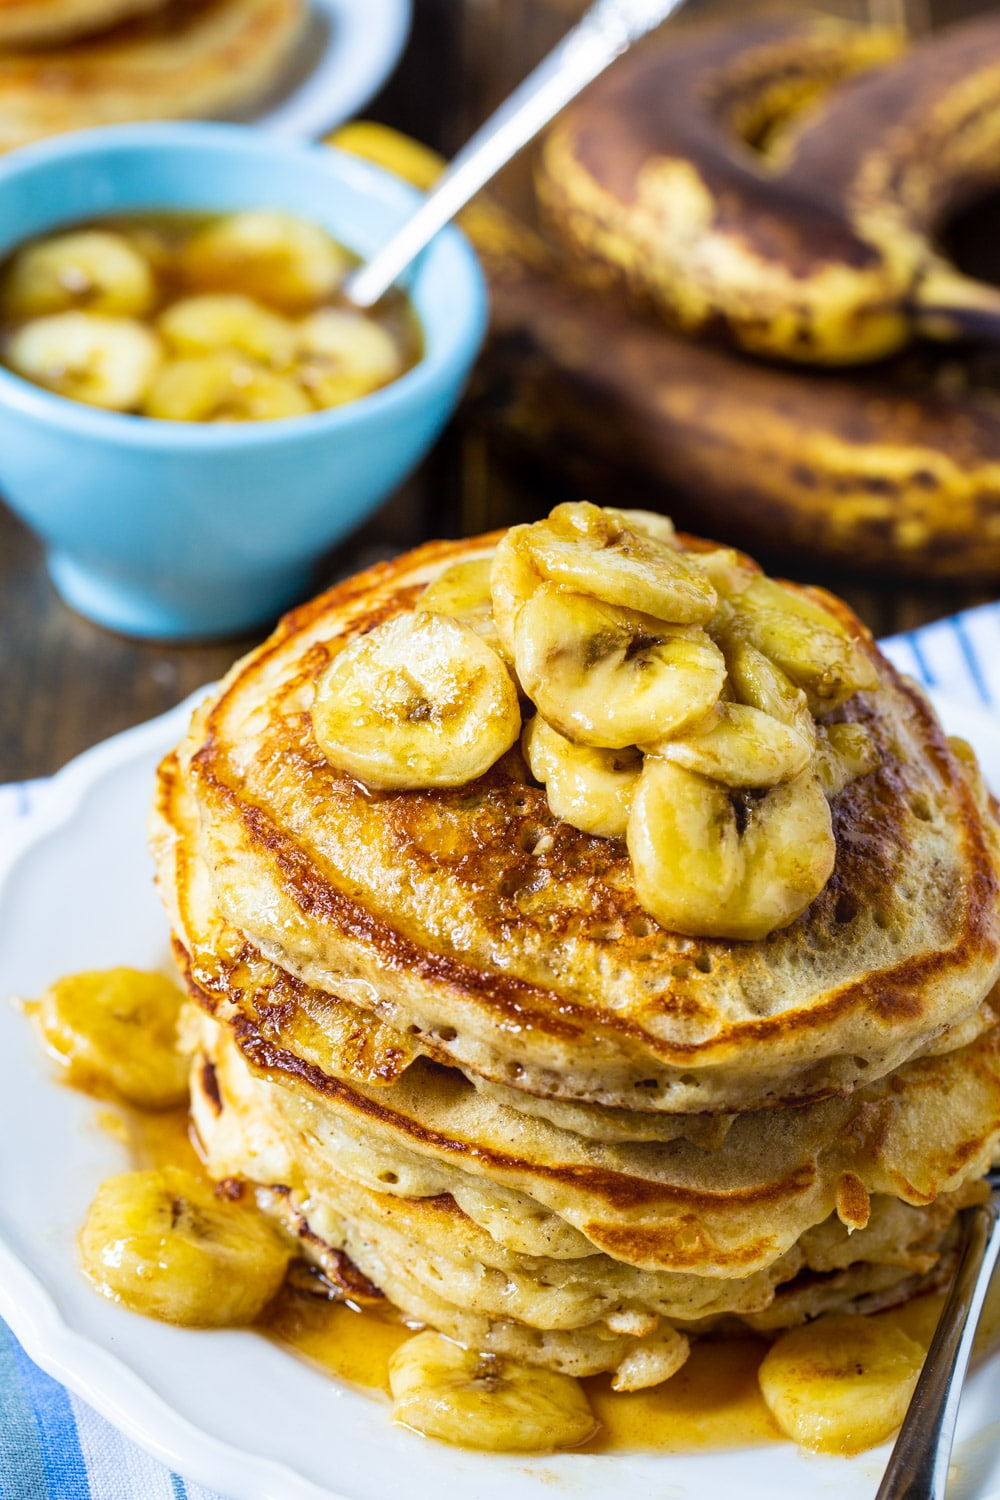 Pancakes stacked on a plate and topped with banana slices.